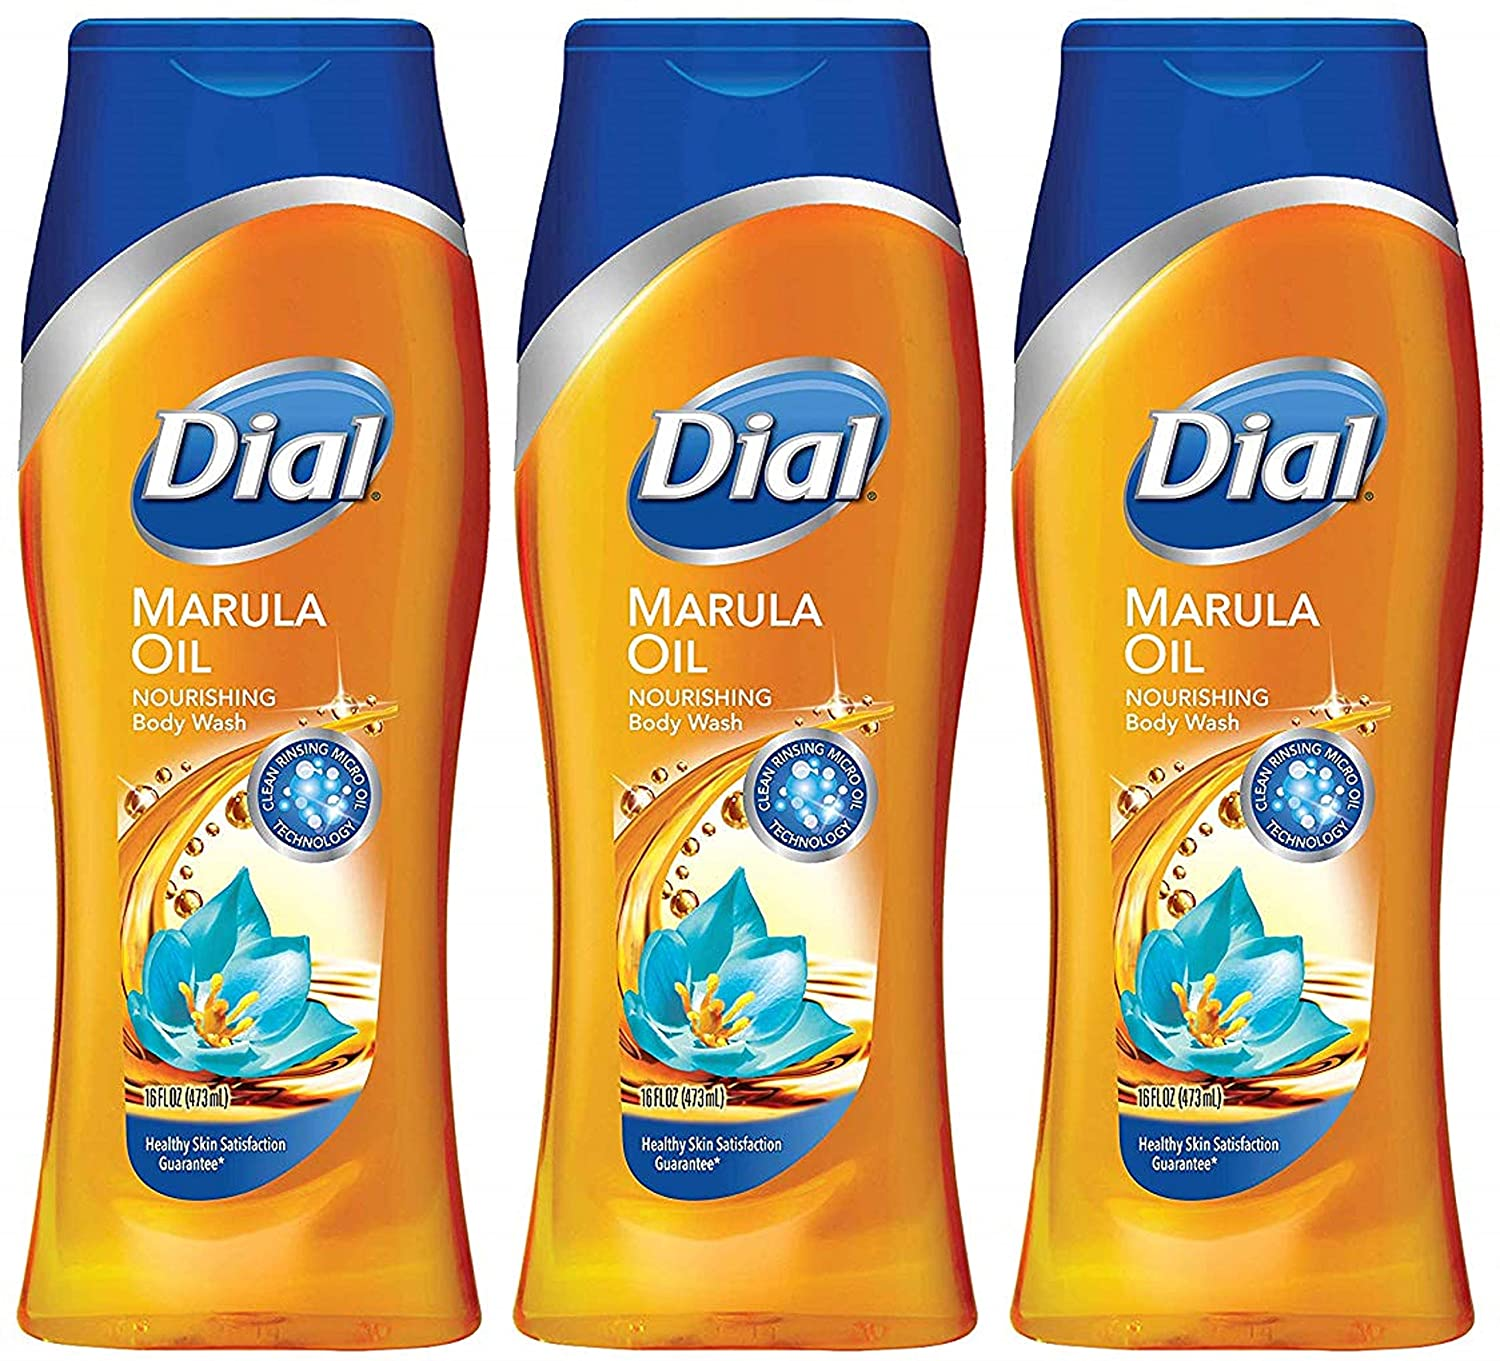 Dial Restoring Body Wash - Miracle Oil - With Marula Oil - Net Wt. 16 FL OZ (473 mL) Per Bottle - Pack of 3